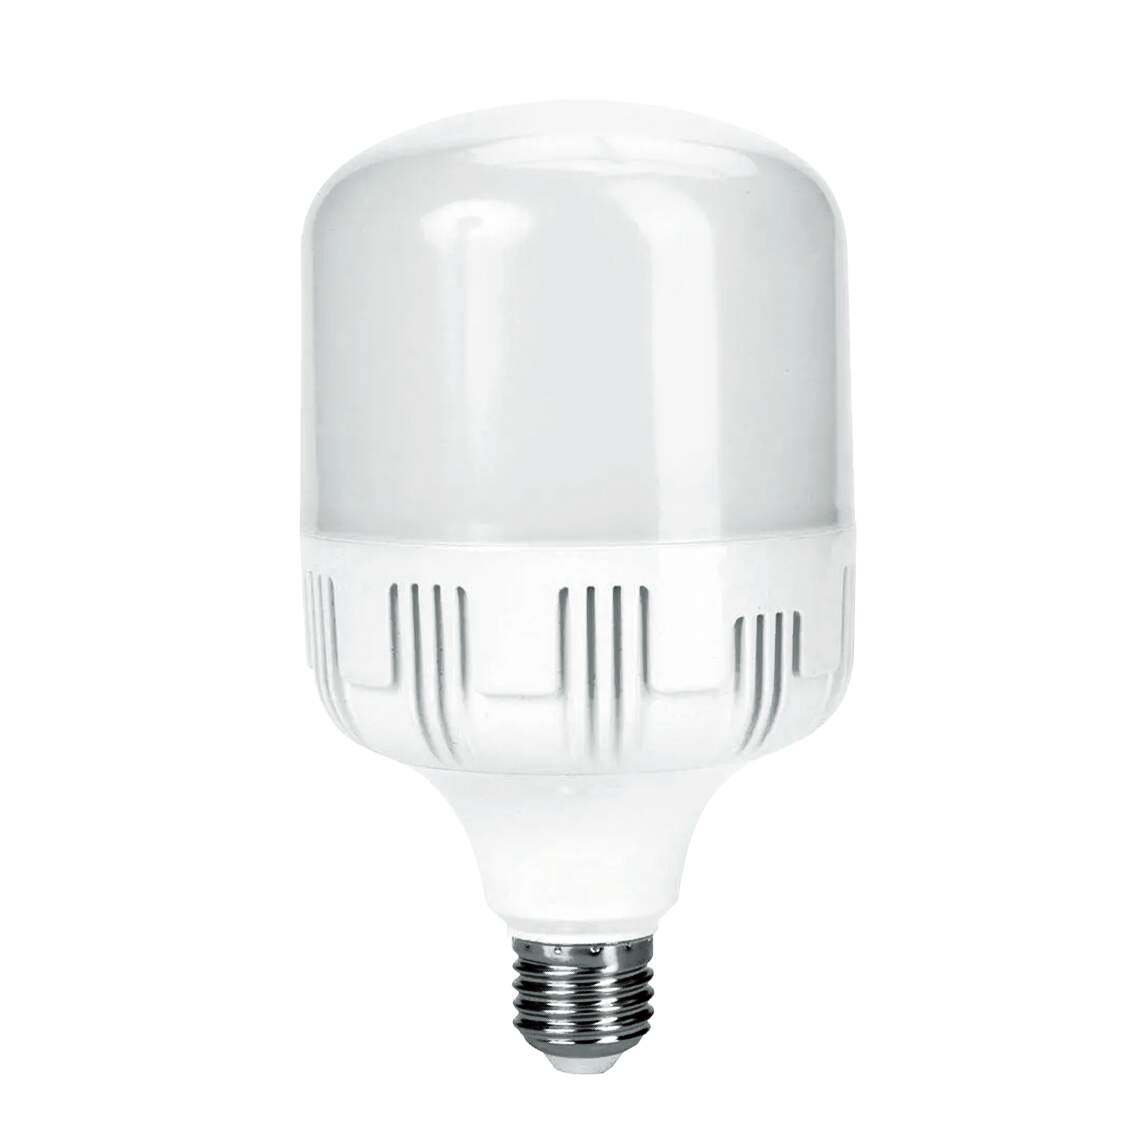 Lâmpada LED industrial bulbo E27/E40 120w com adaptador